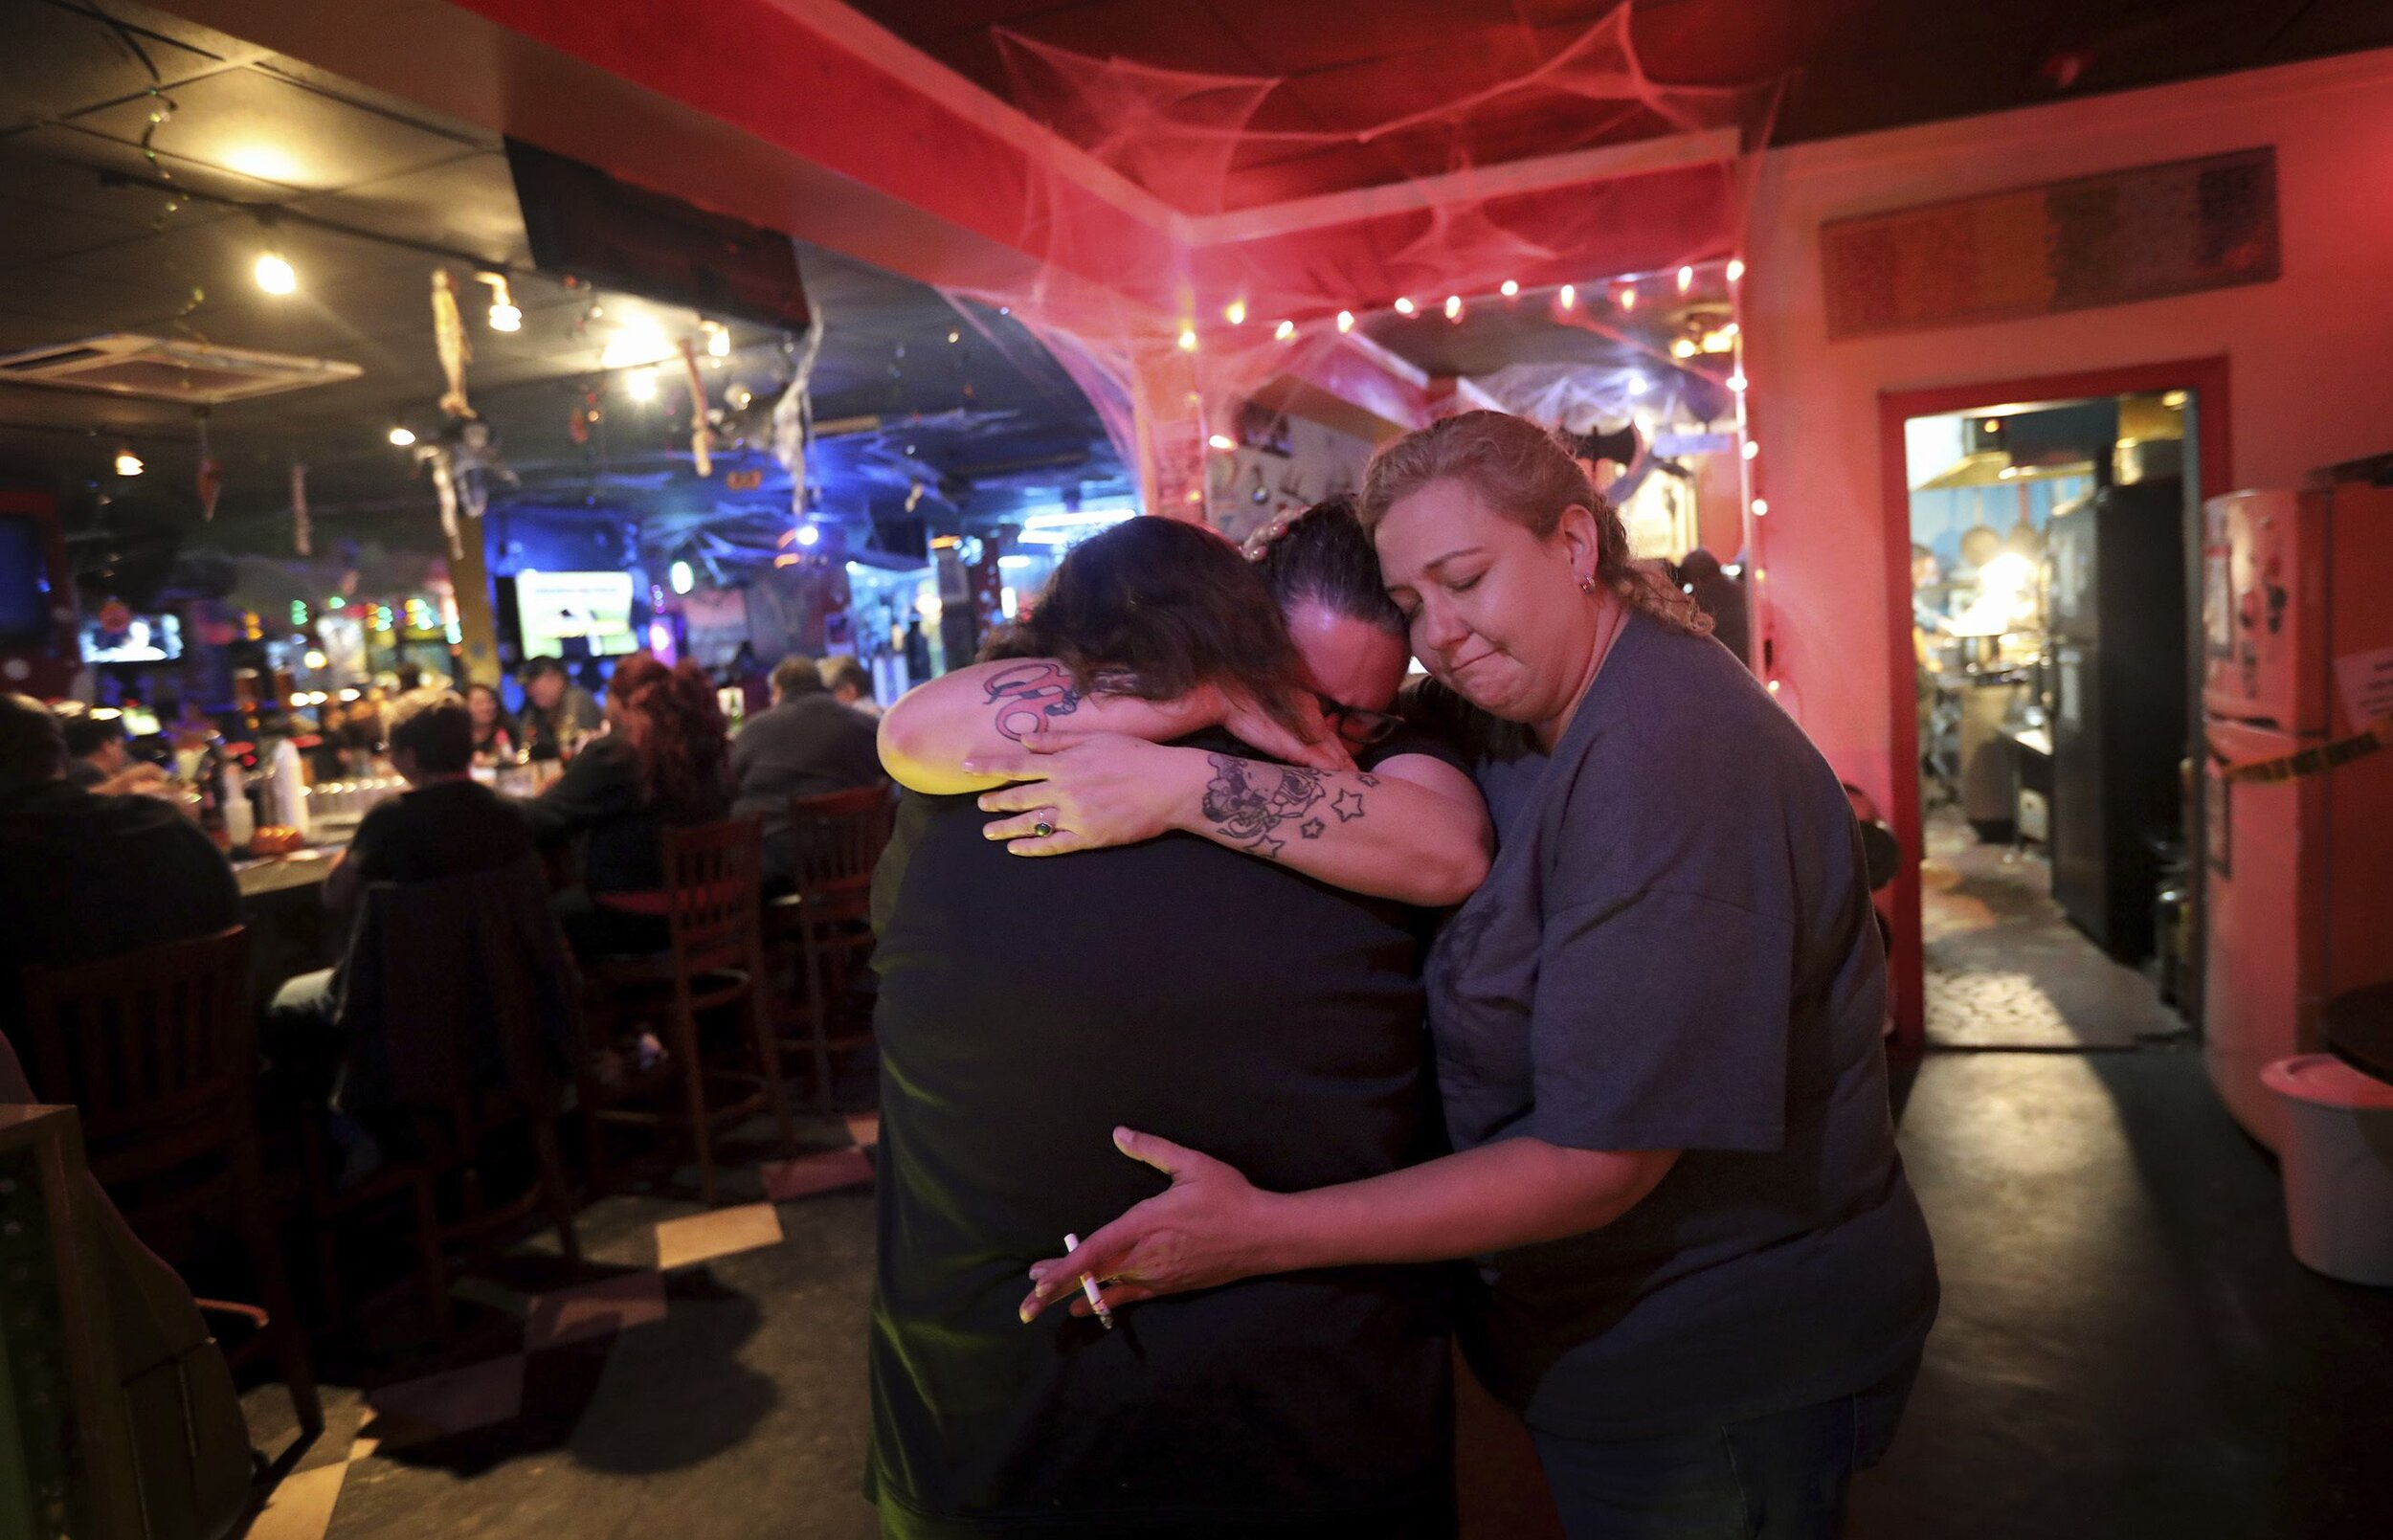 Three woman hug in the last days of Hershee Bar, one of the oldest lesbian bars on the East Coast. It closed in 2018 after 35+ years of operation in Norfolk.